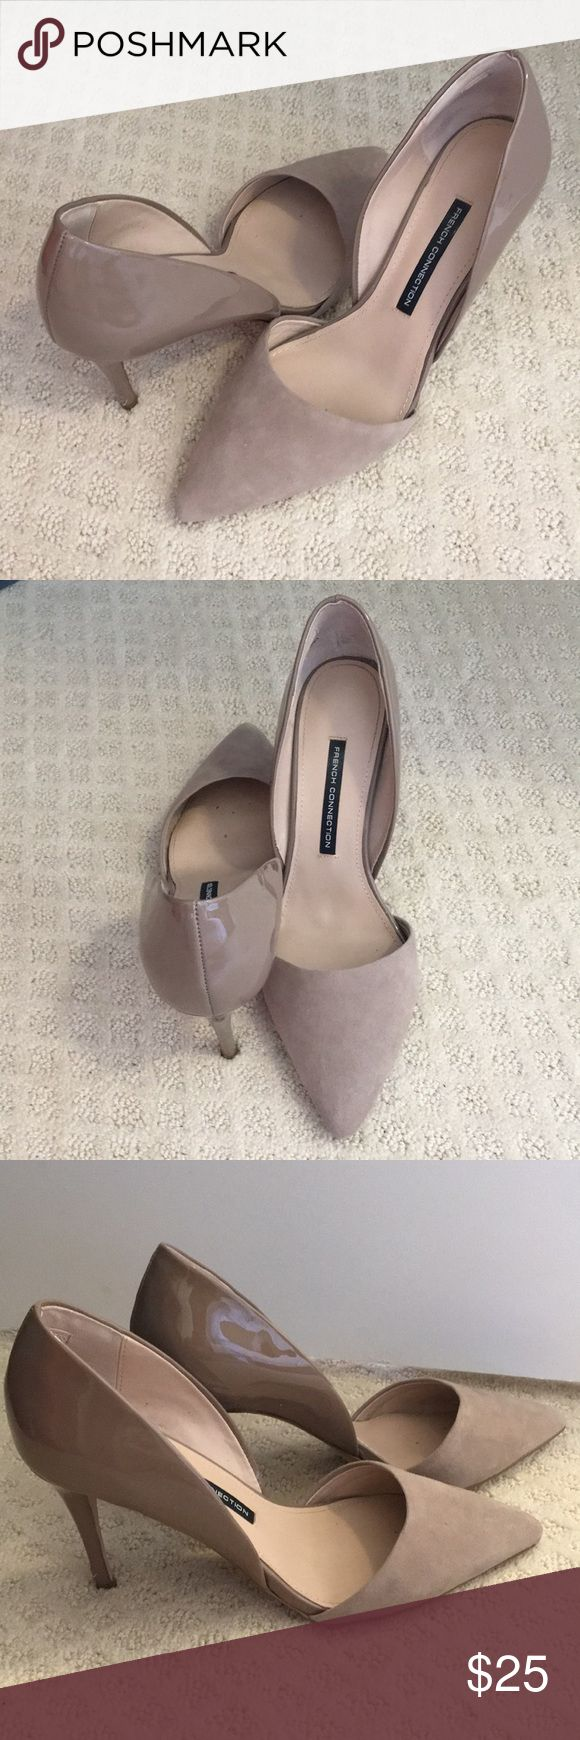 """French Connection D'Orsay nude pumps French Connection D'Orsay nude pumps, suede almond toe, patent heel, 3.5"""" covered heel, lightly worn French Connection Shoes Heels"""